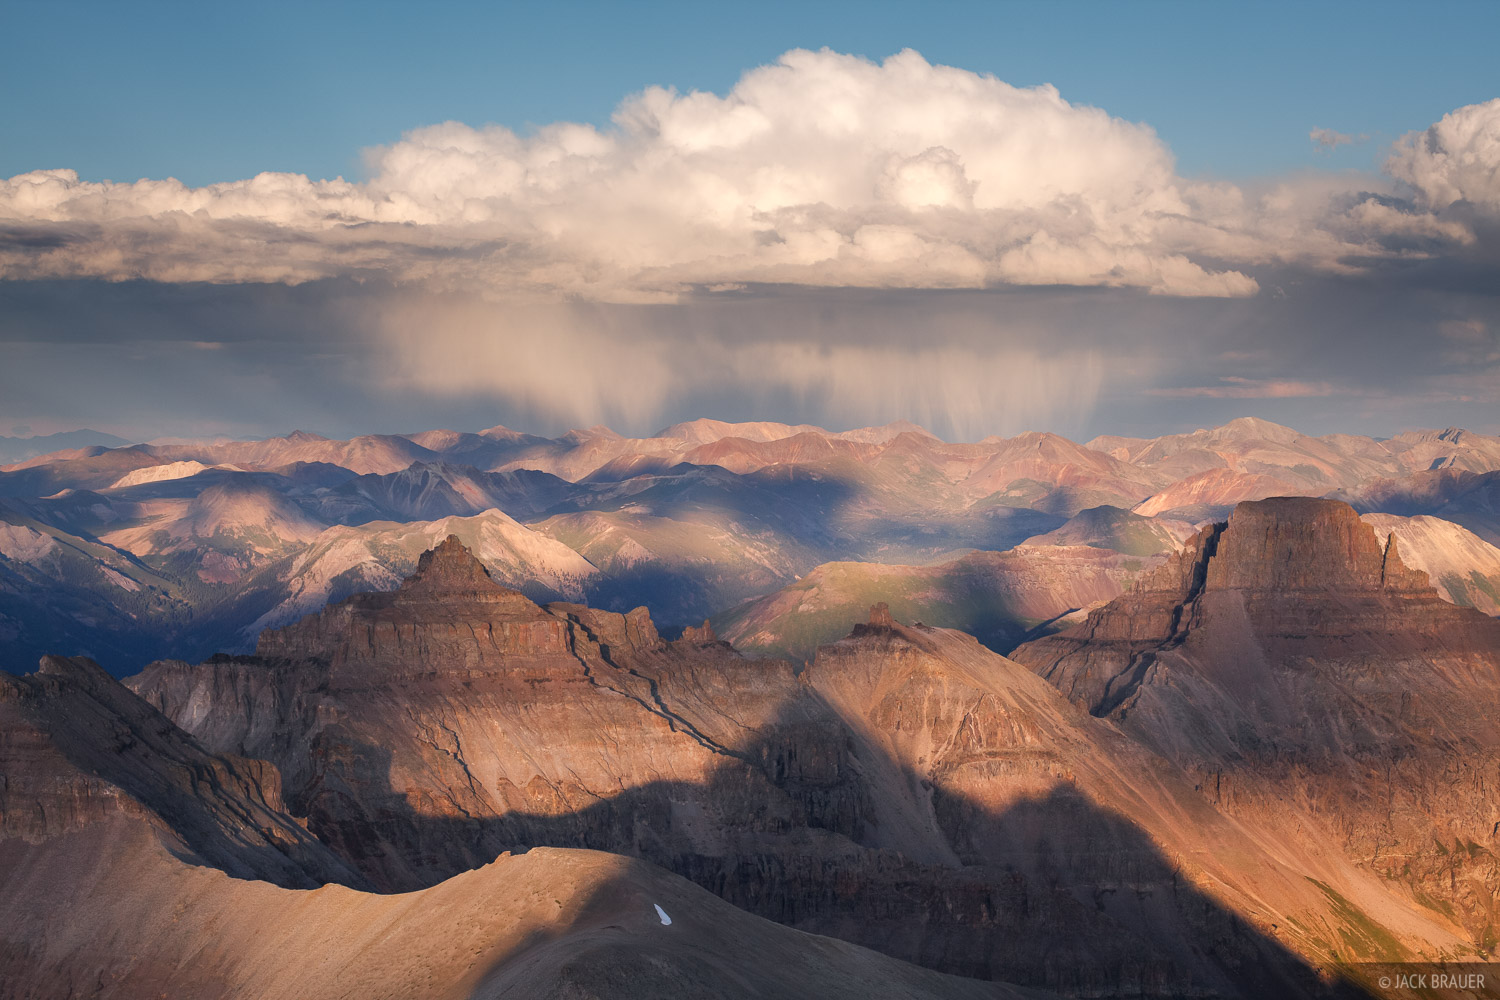 A distant summer shower over the Uncompahgre Wilderness, as seen from the summit of Mt. Sneffels (note the summit shadow in the...